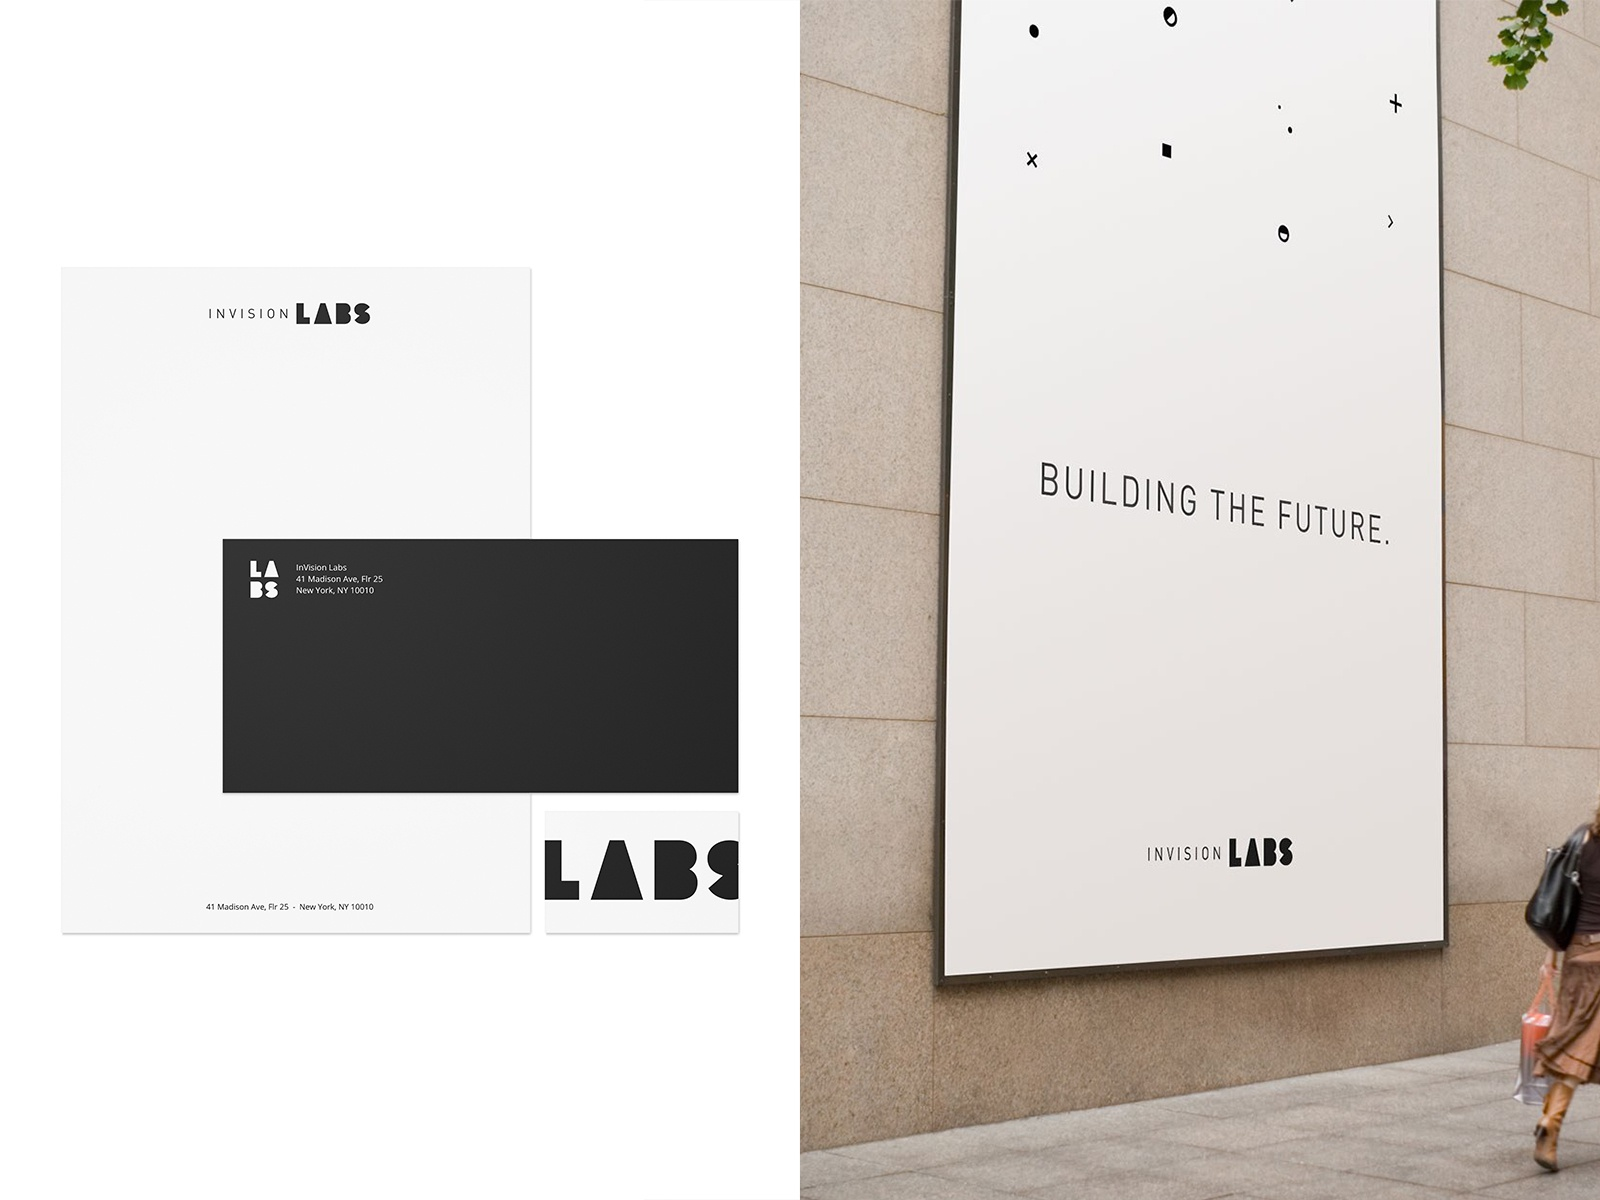 Invision labs branding